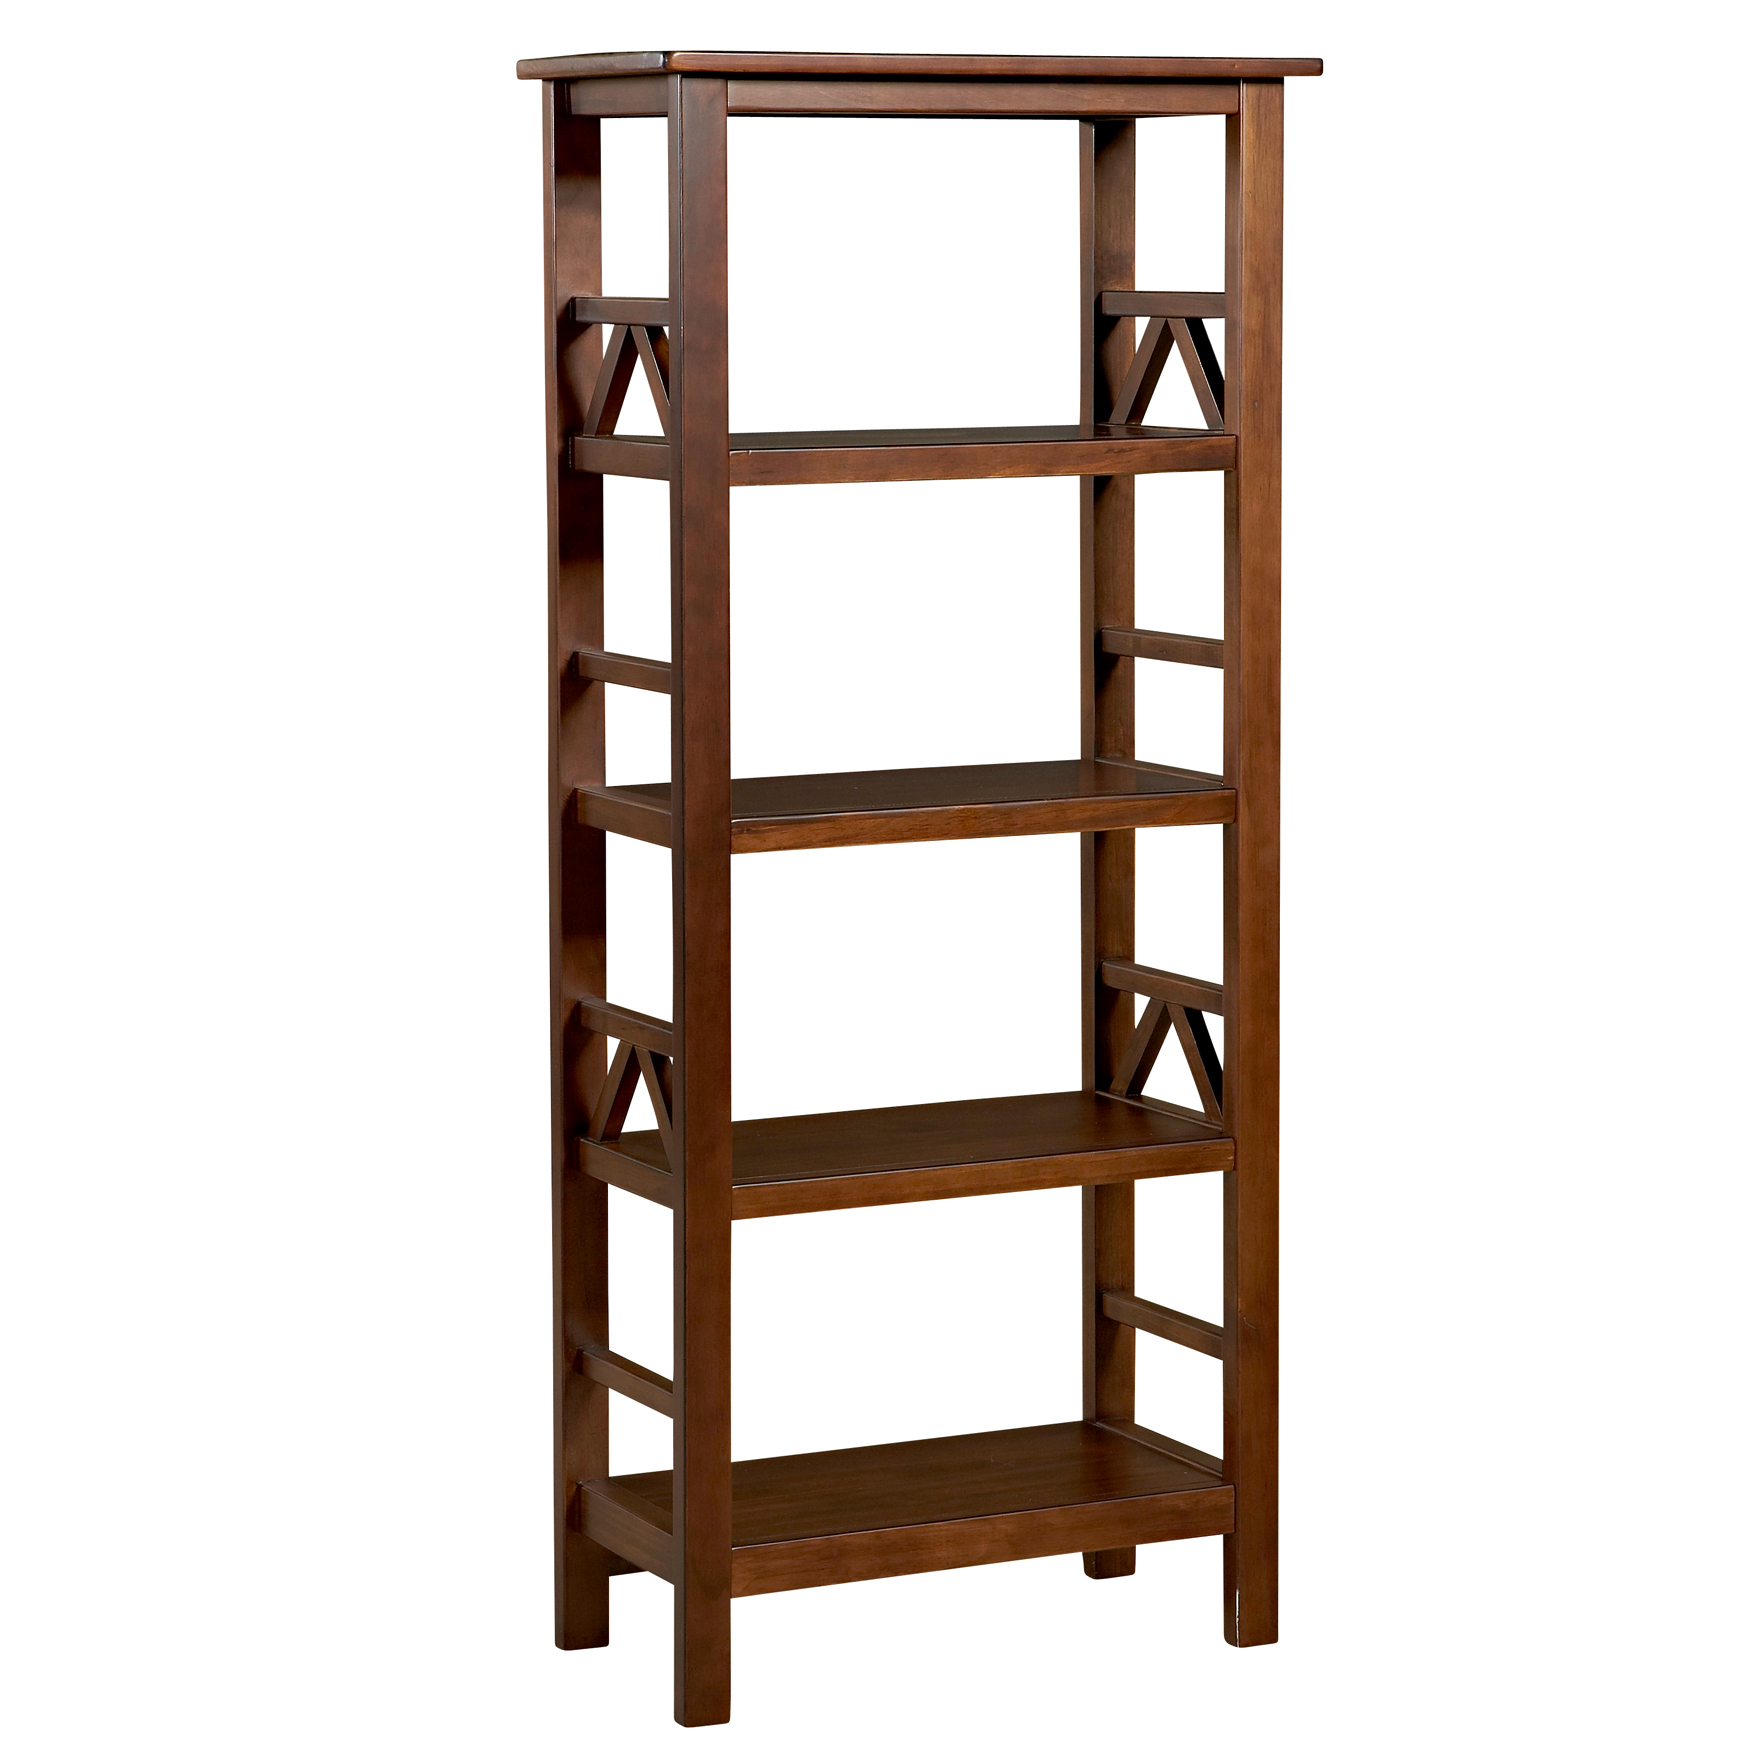 Titian Bookcase, ANTIQUE TOBACCO